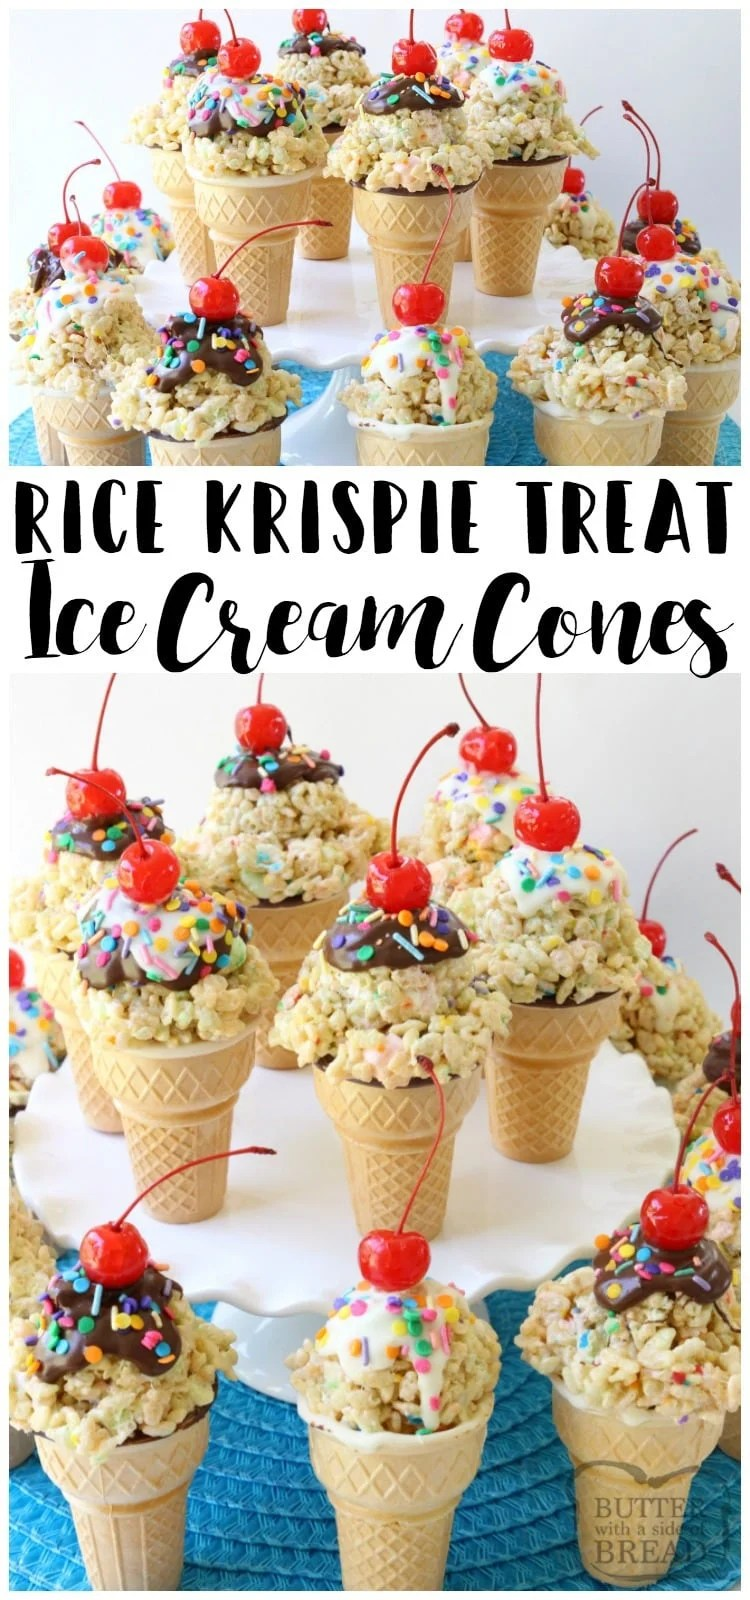 Rice Krispie Ice Cream Cones are easy to make & super cute too! Gooey marshmallow treats topped with melted chocolate, sprinkles & a cherry make these cute cones amazing. Bonus too- they each have a special treat inside the cone! Easy dessert recipe from Butter With A Side of Bread